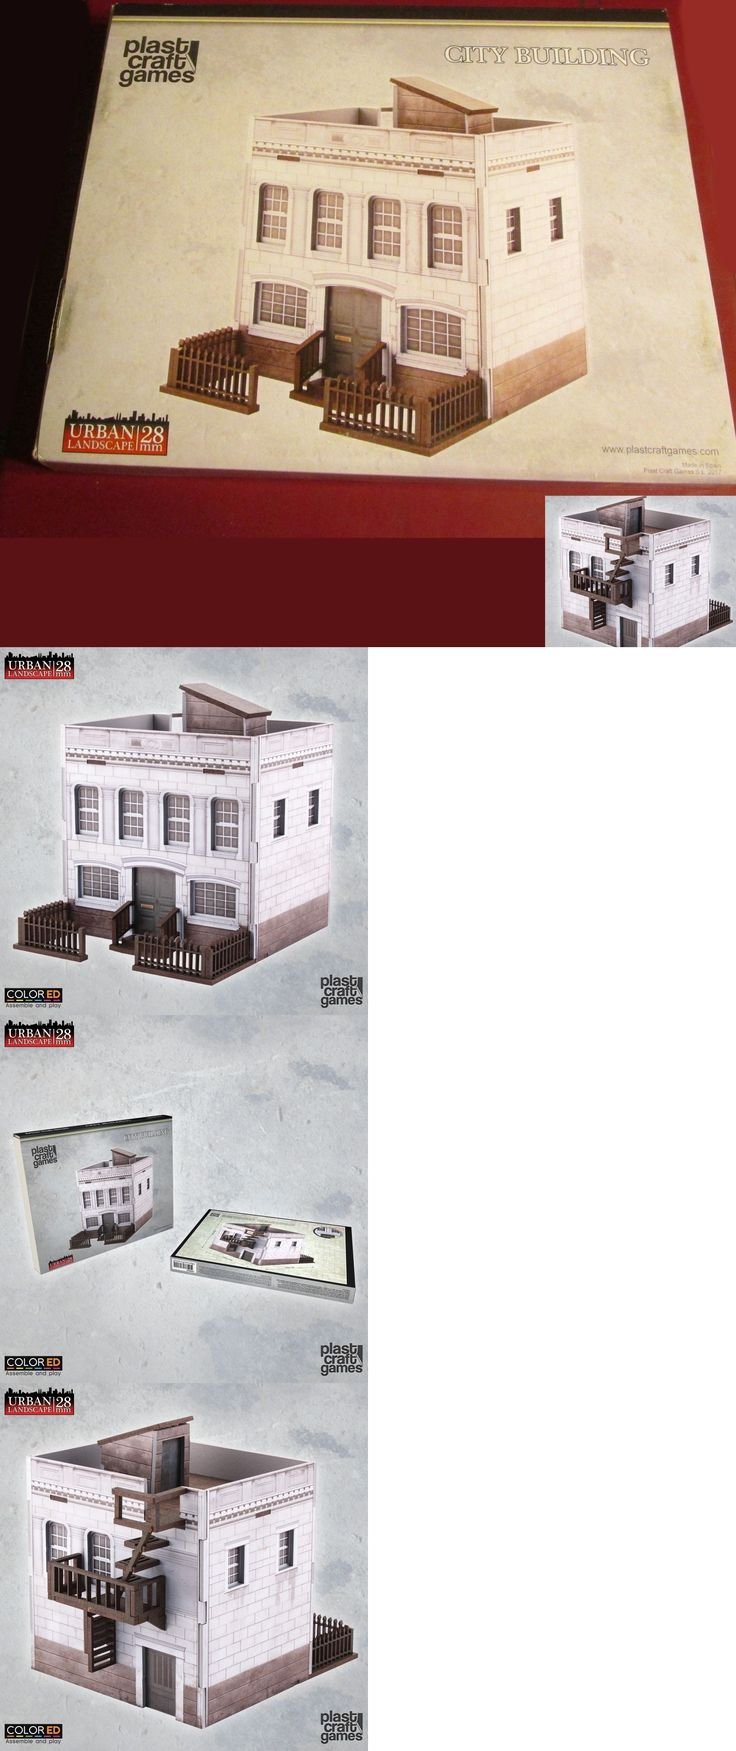 28mm 158730: Plast Craft Games Ur005 Colored 28Mm Urban Landscape City Building Townhouse Nib -> BUY IT NOW ONLY: $32.5 on eBay!